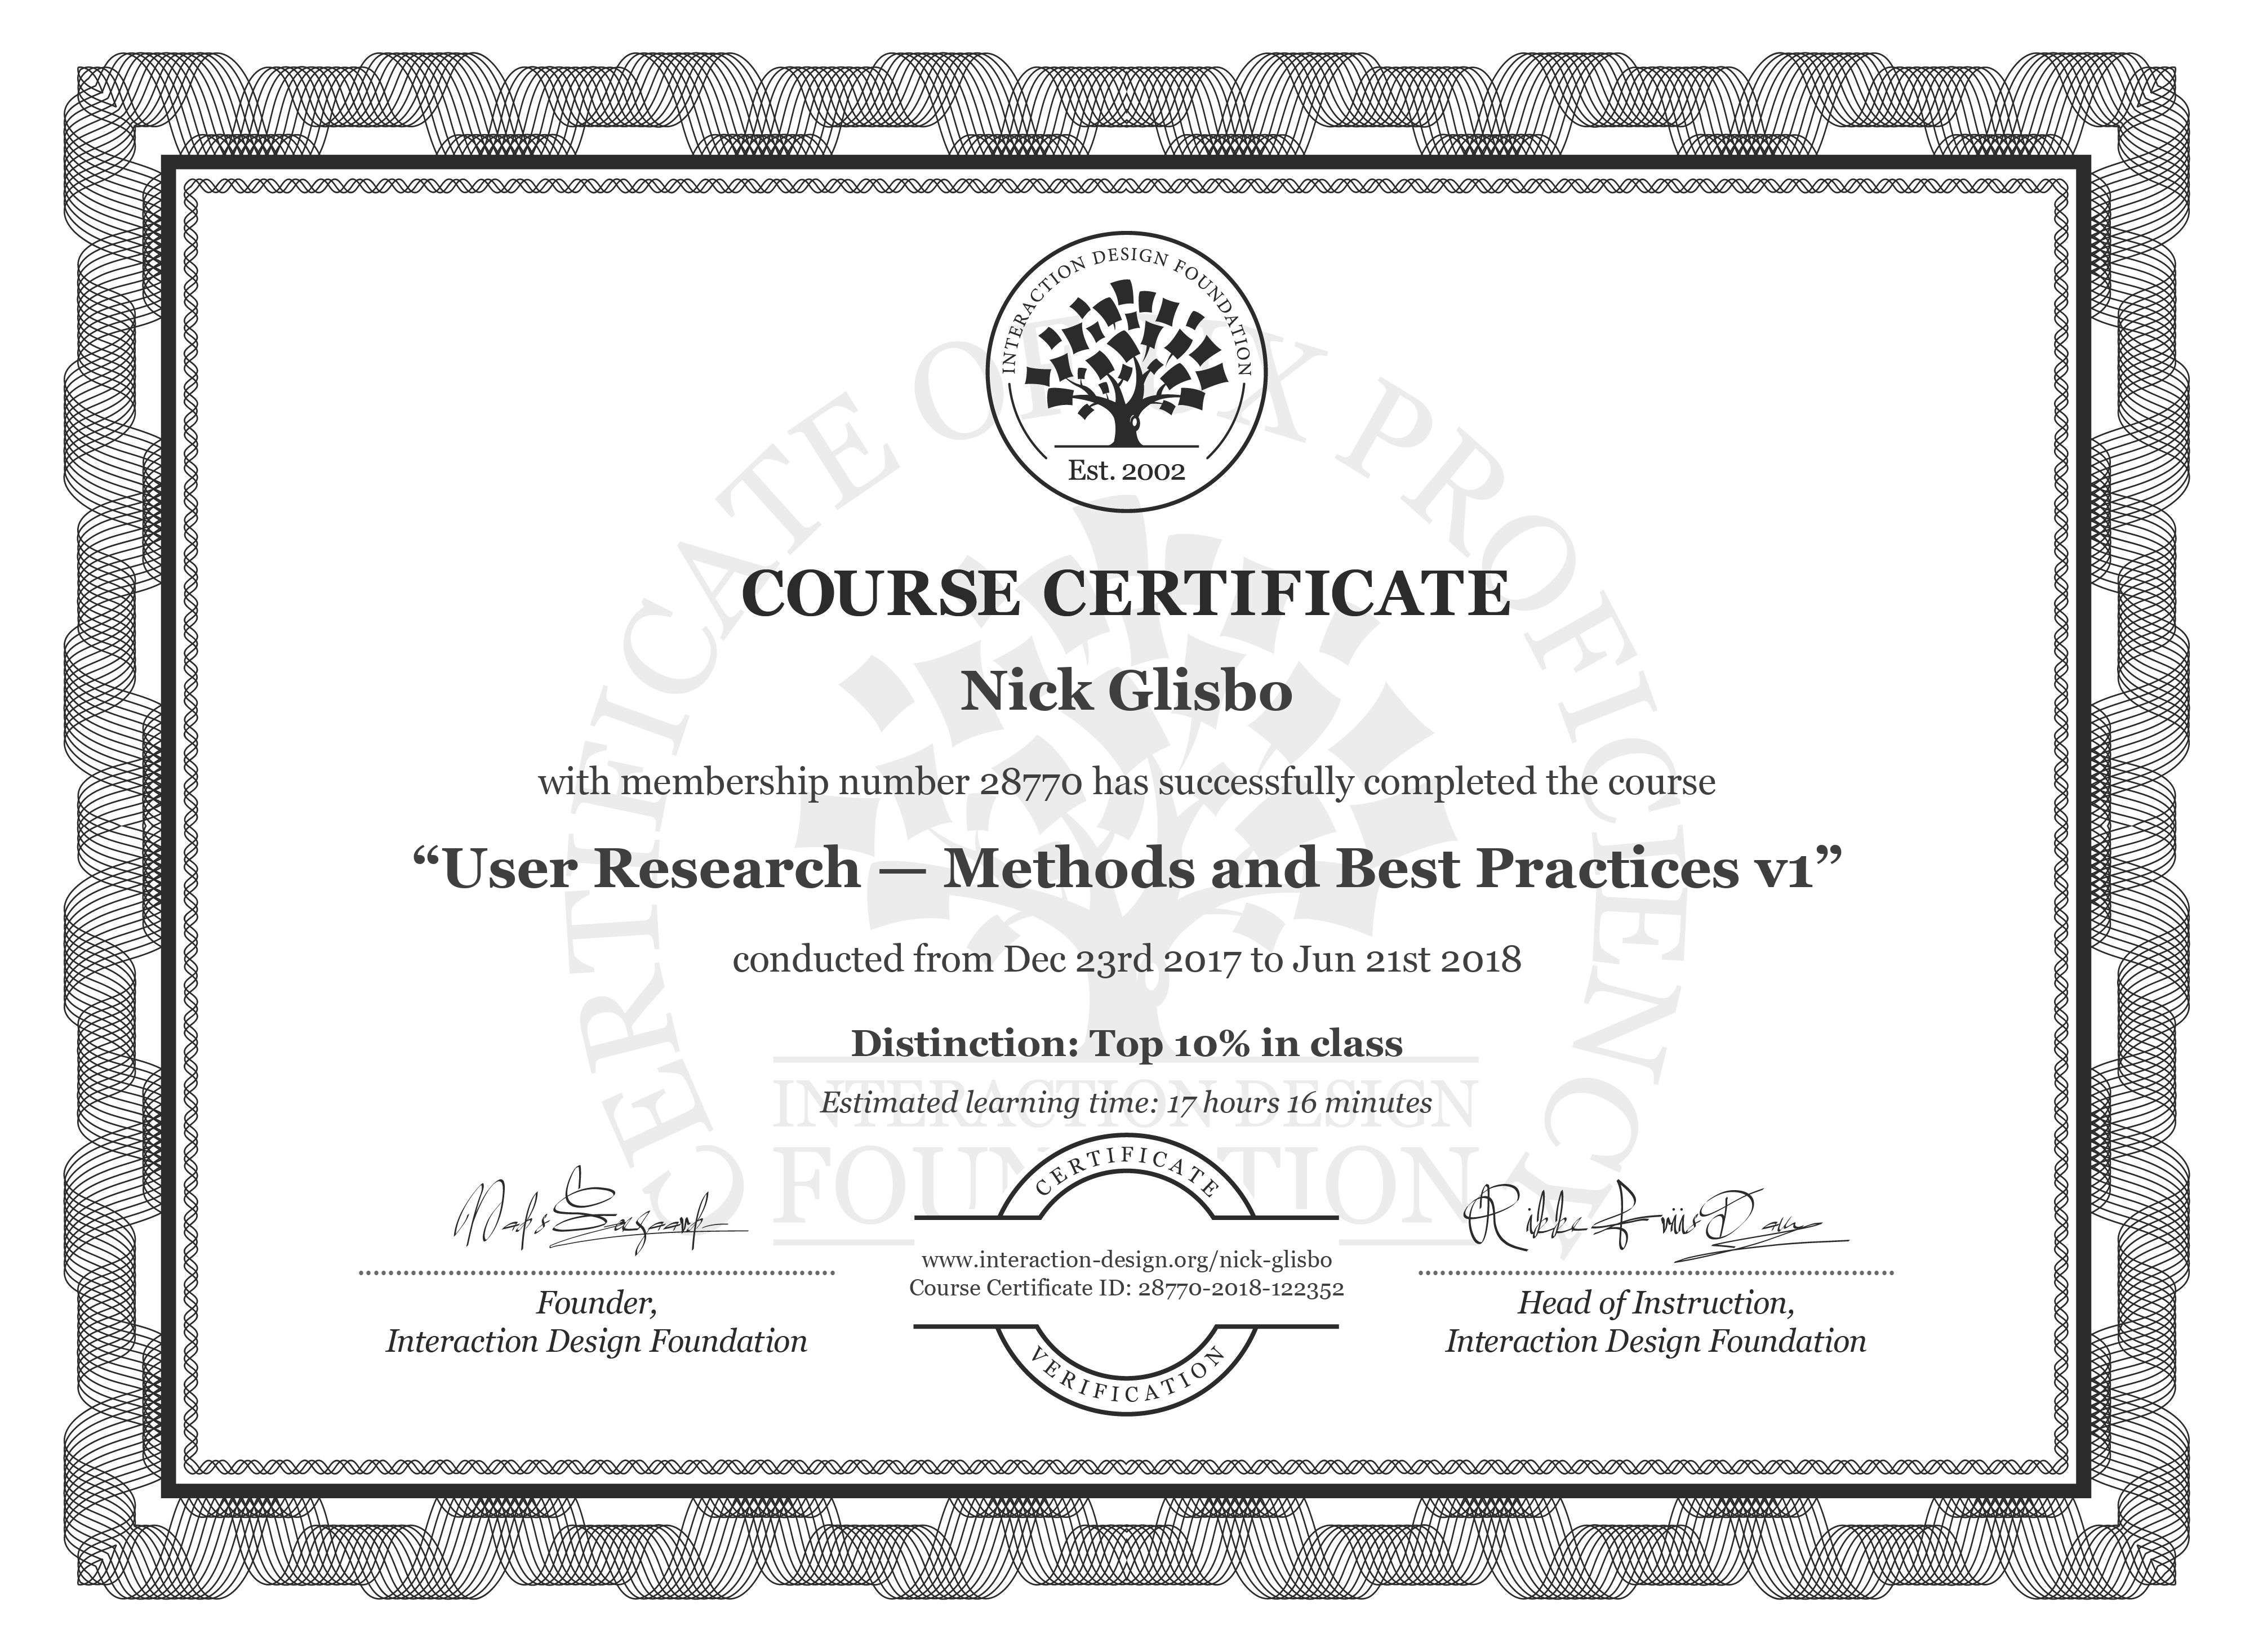 Nick Glisbo: Course Certificate - User Research — Methods and Best Practices